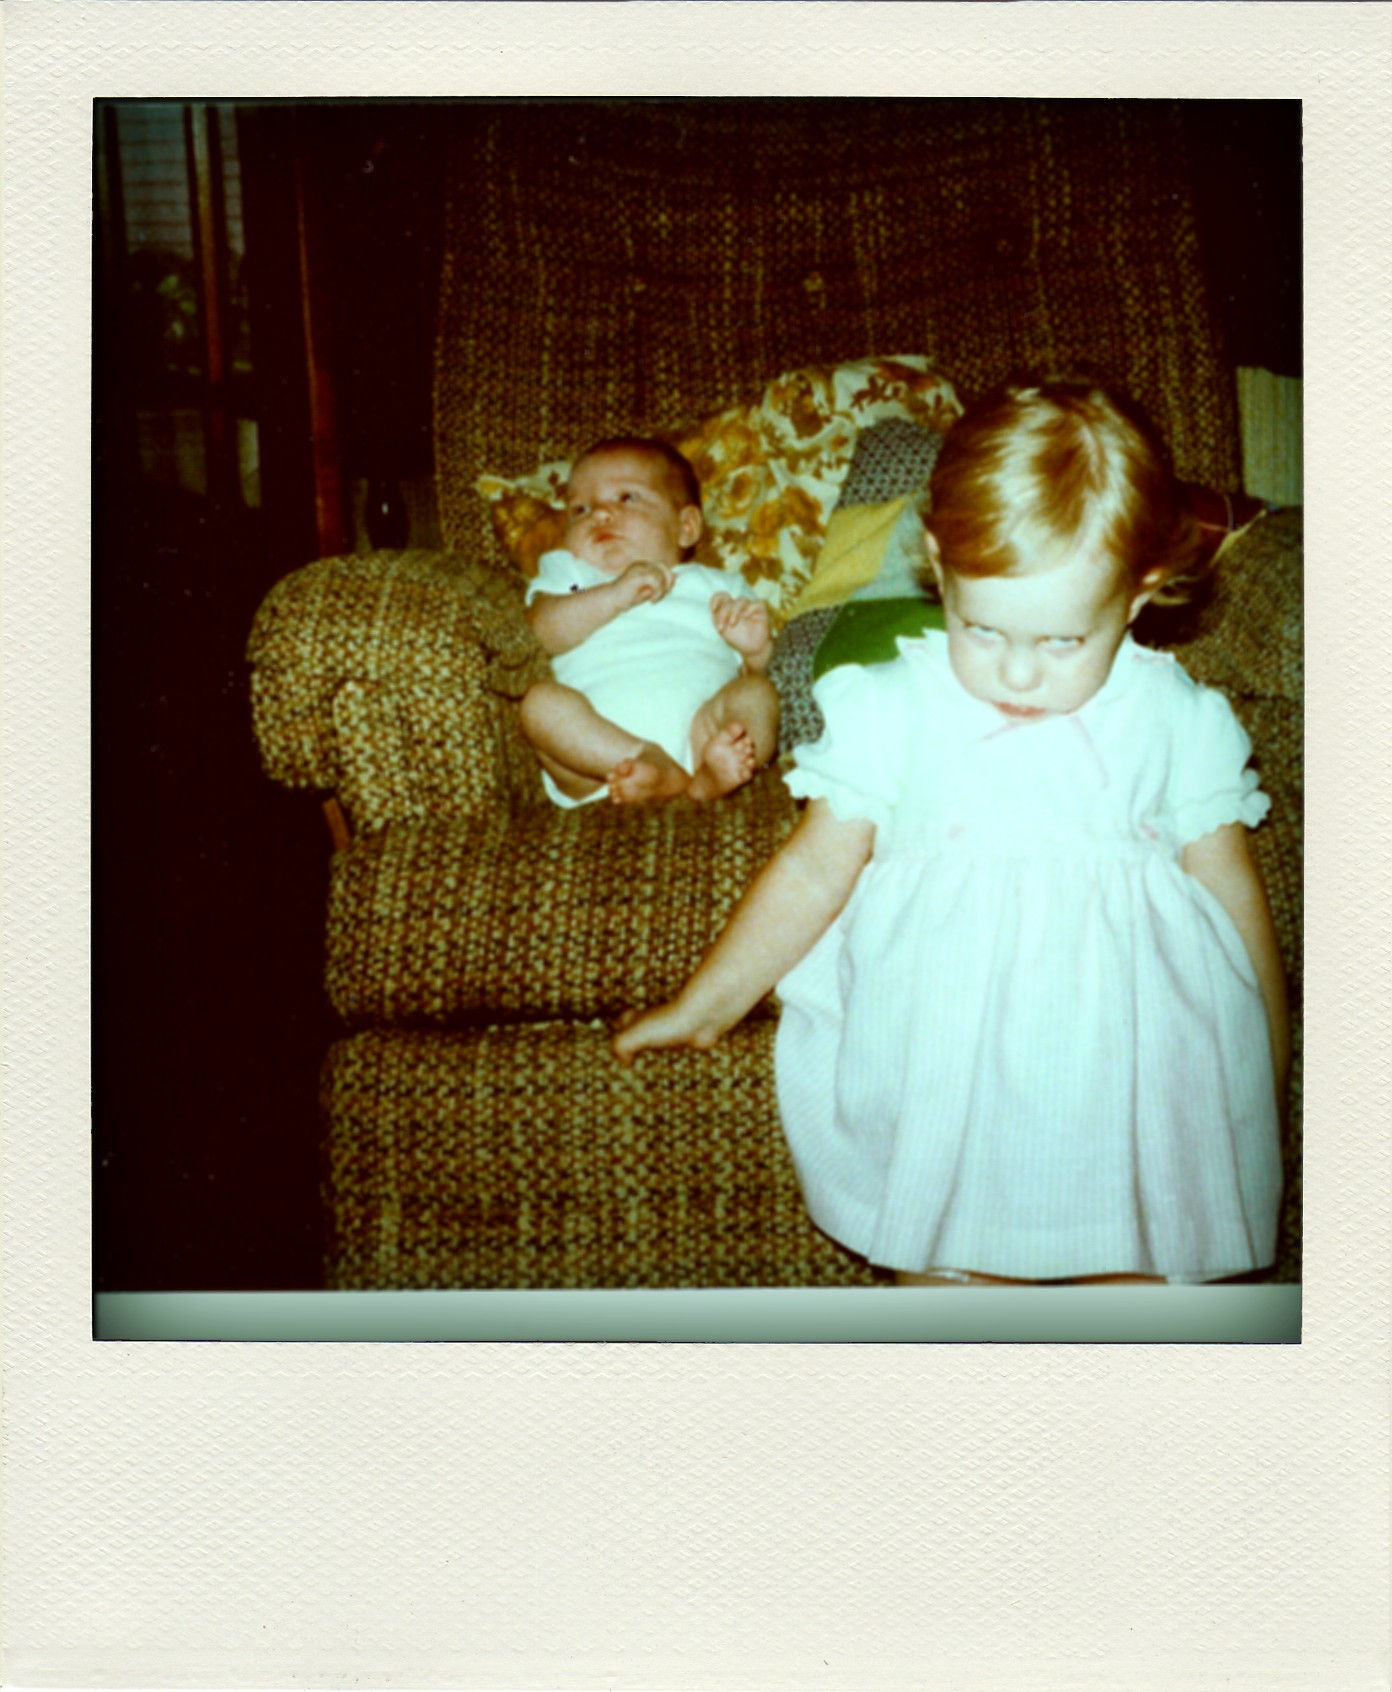 But I don't want my picture taken-Layne&Cat 8-24-84-pola